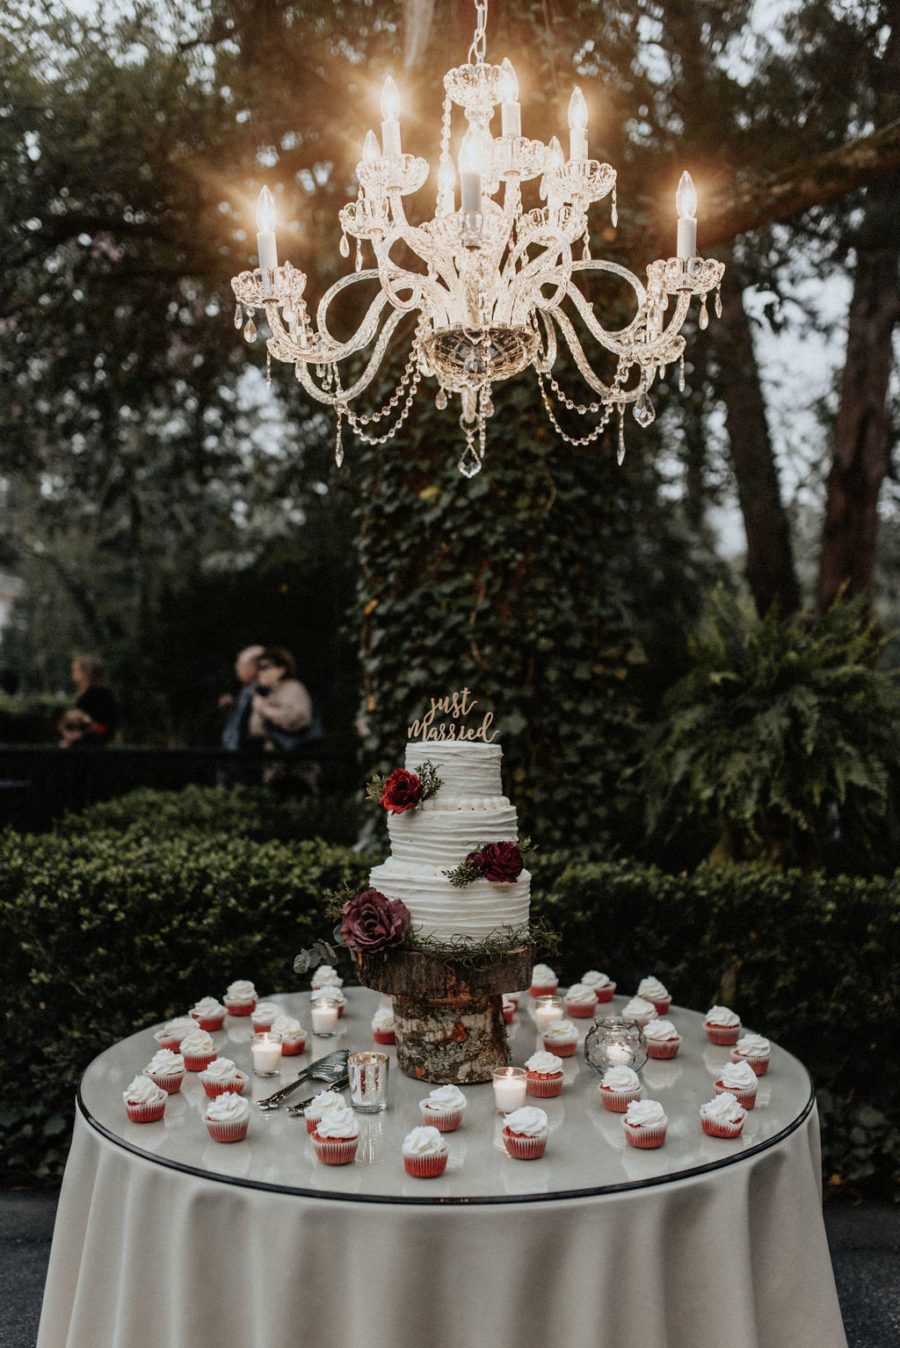 Wedding cake table: Magical Winter Wedding by Meghan Melia Photography featured on Nashville Bride Guide!